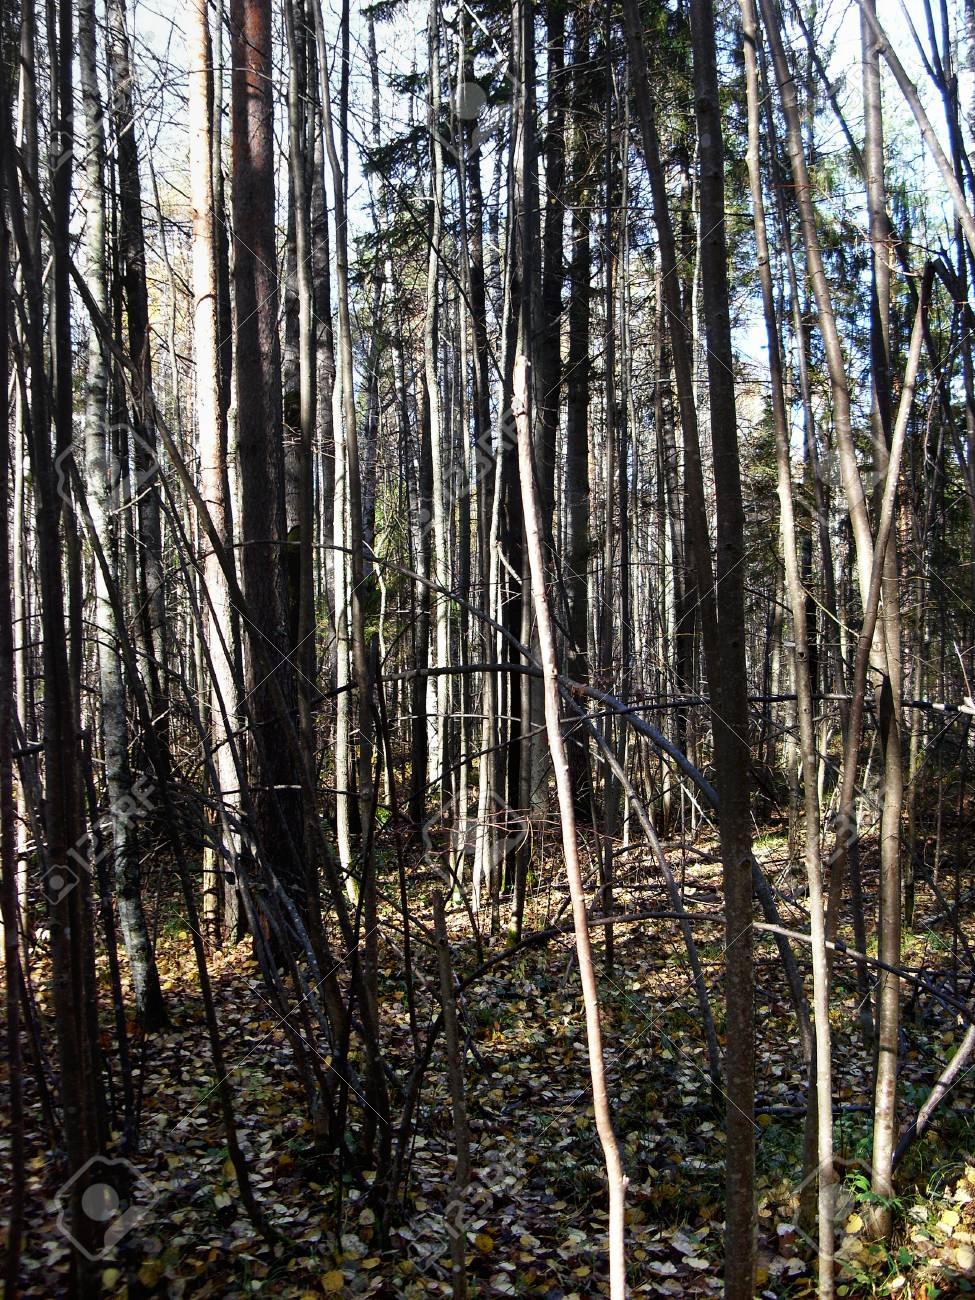 impenetrable thickets of wild forest - 75538373